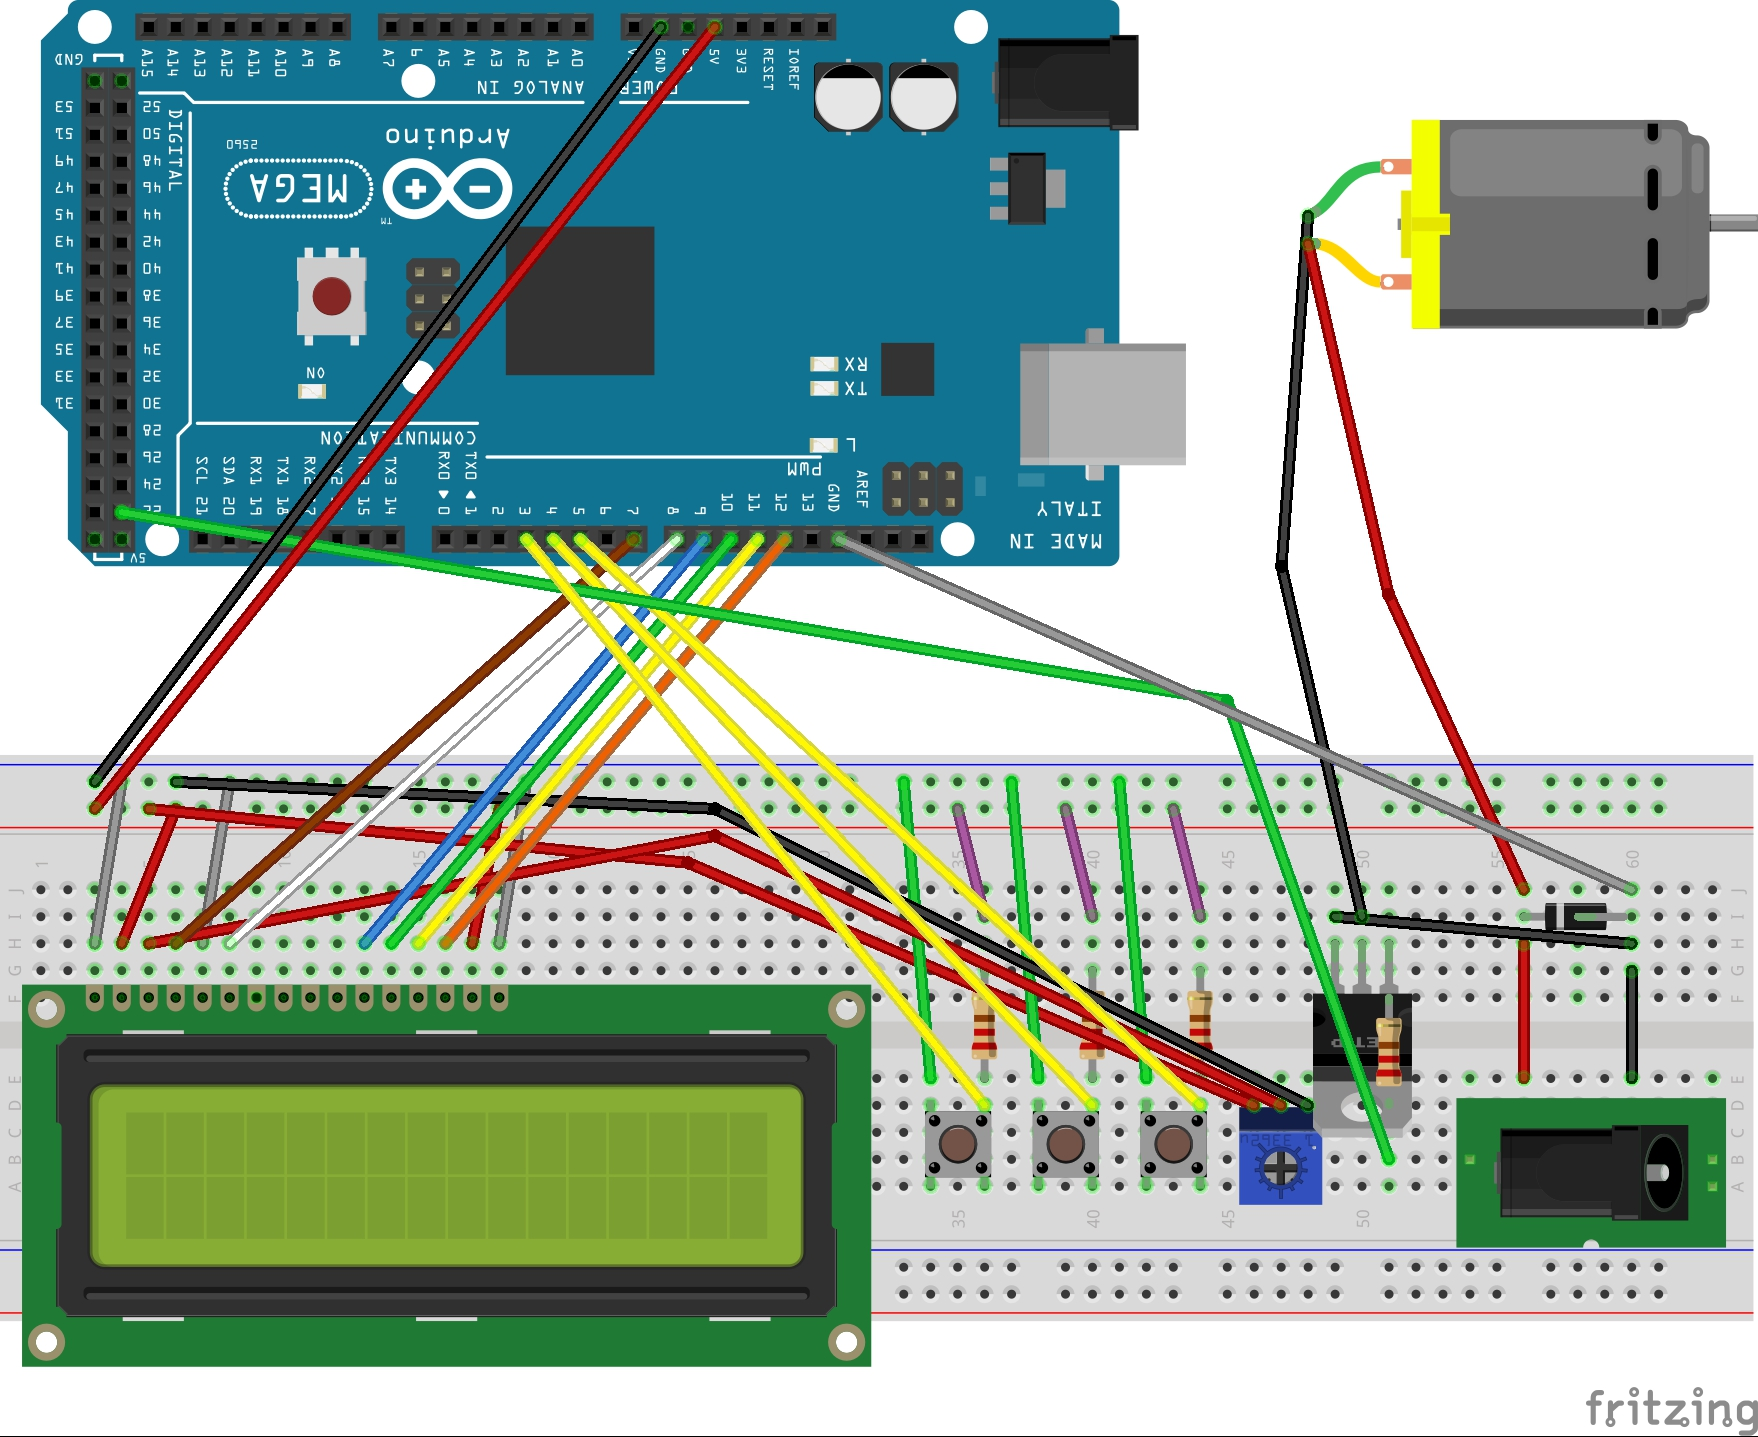 Fritzing part - pololu jrk 21v3 - Motor controllers/drivers